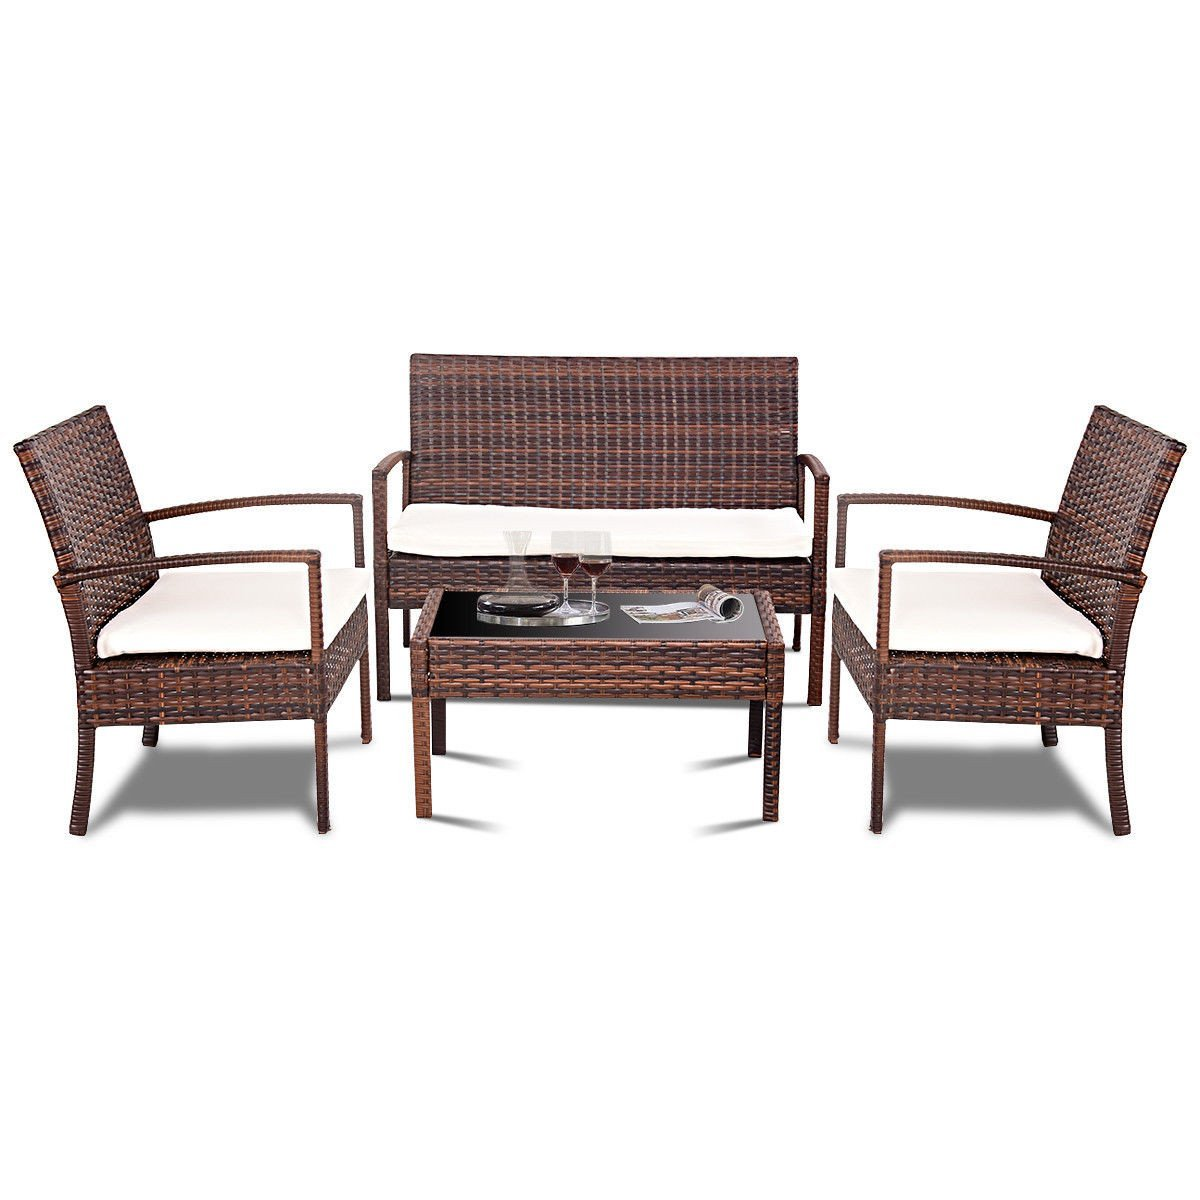 4 Piece Brown Rattan Wicker Patio Furniture Set